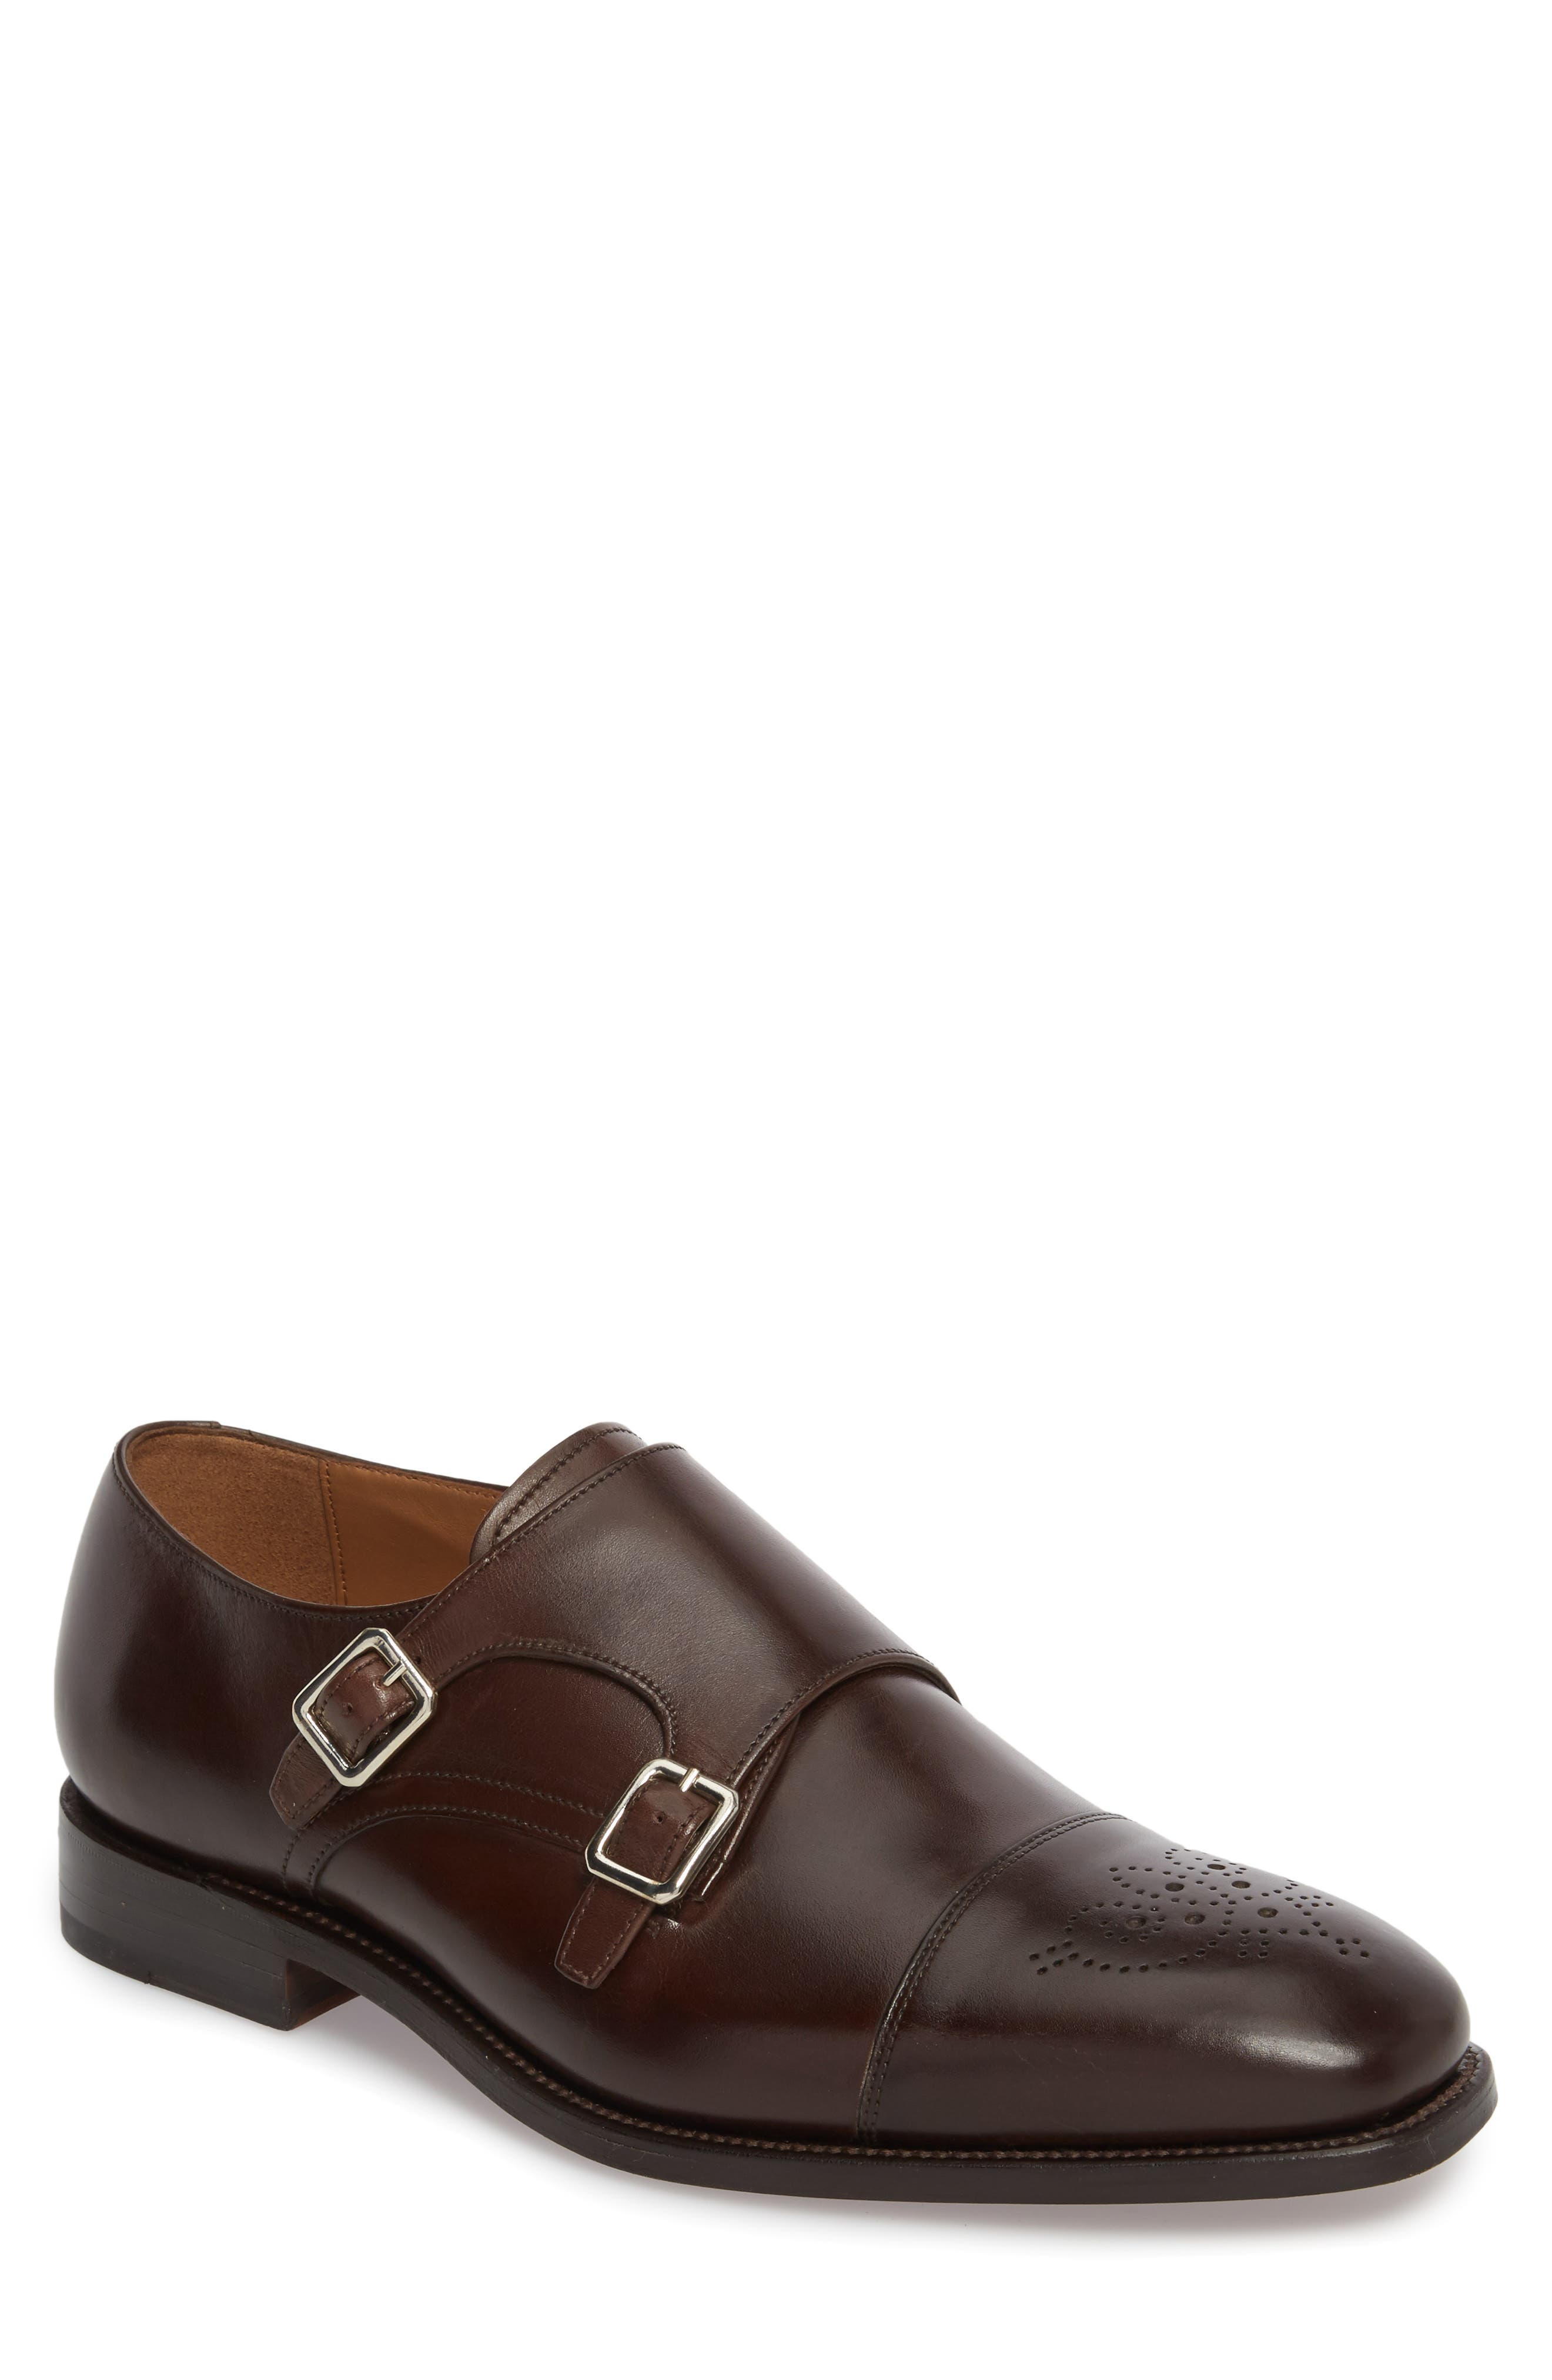 Sausalito Double Monk Strap Shoe,                             Main thumbnail 1, color,                             Coffee